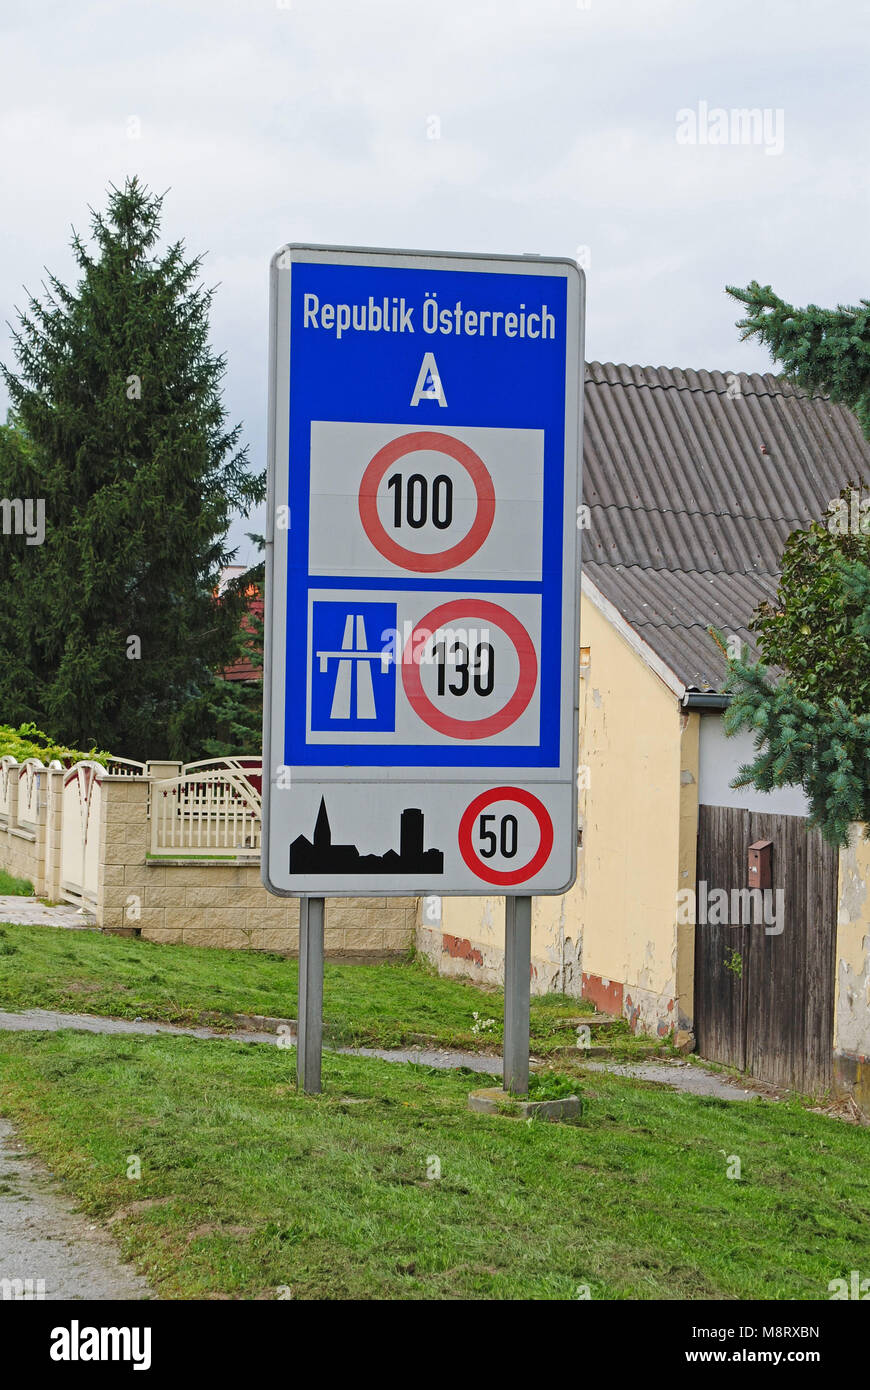 A speed limit sign welcomes the visitors at the border in Austria. - Stock Image